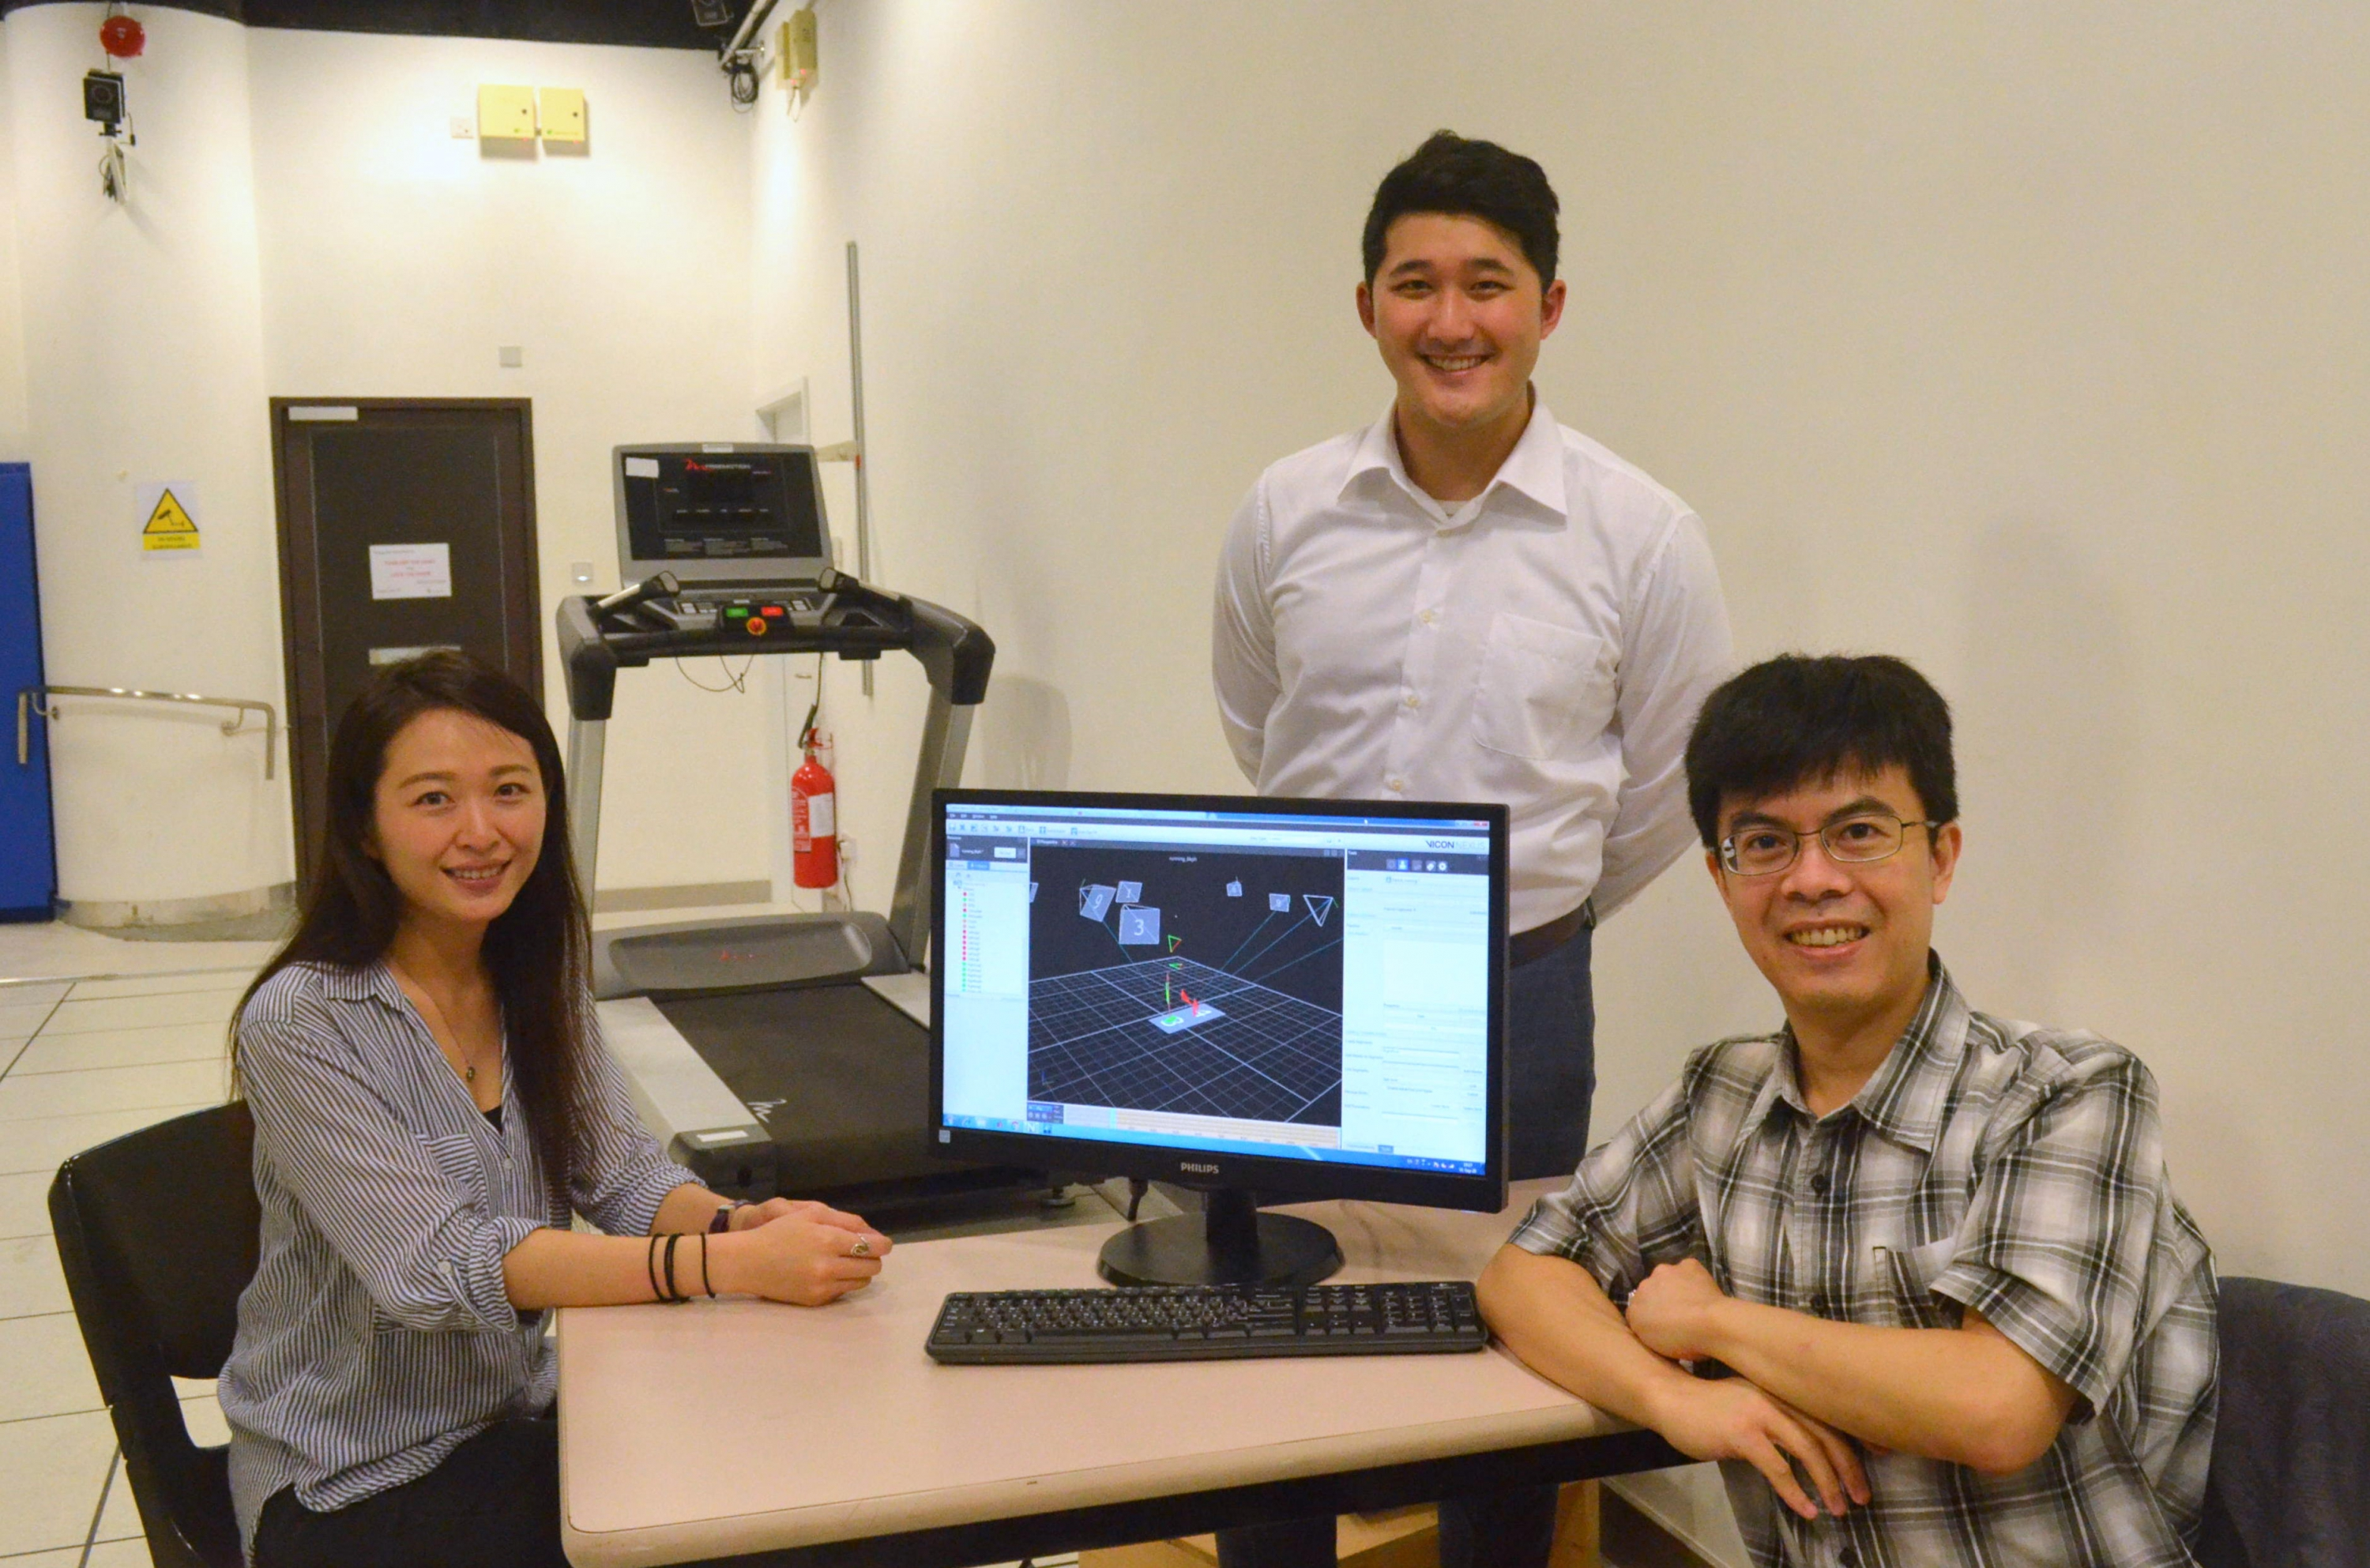 Researchers from CUHK, PolyU and Western Sydney University in Australia have recently discovered that the human nervous system is equipped with a mechanism that can flexibly adjust the motor commands for different running forms depending on the state of the body and the person's prior running experience. This finding has just been published in Nature Communications.